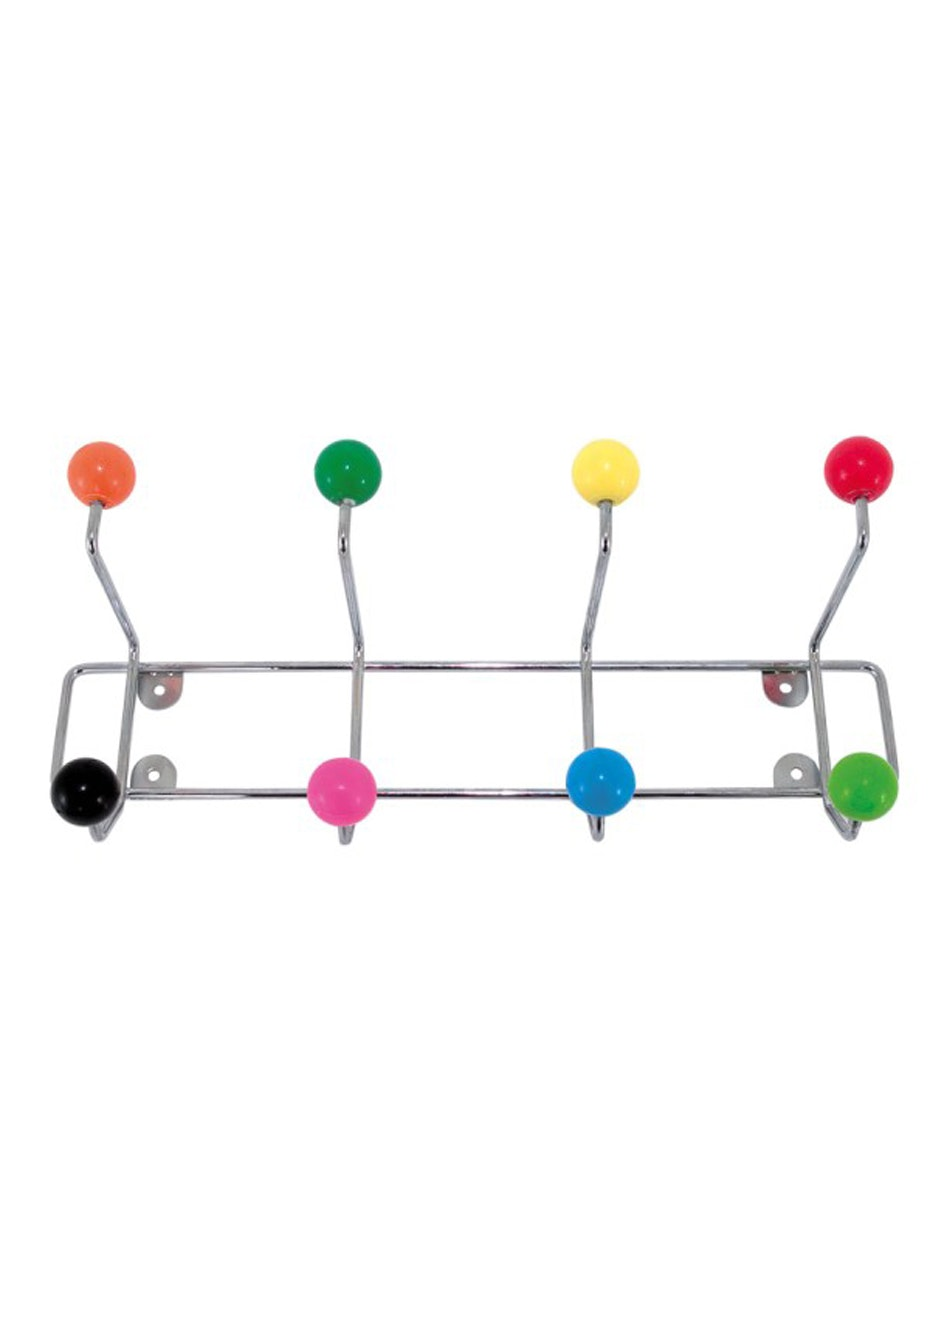 Pt Home - 'Saturn' Coat Rack - Multi